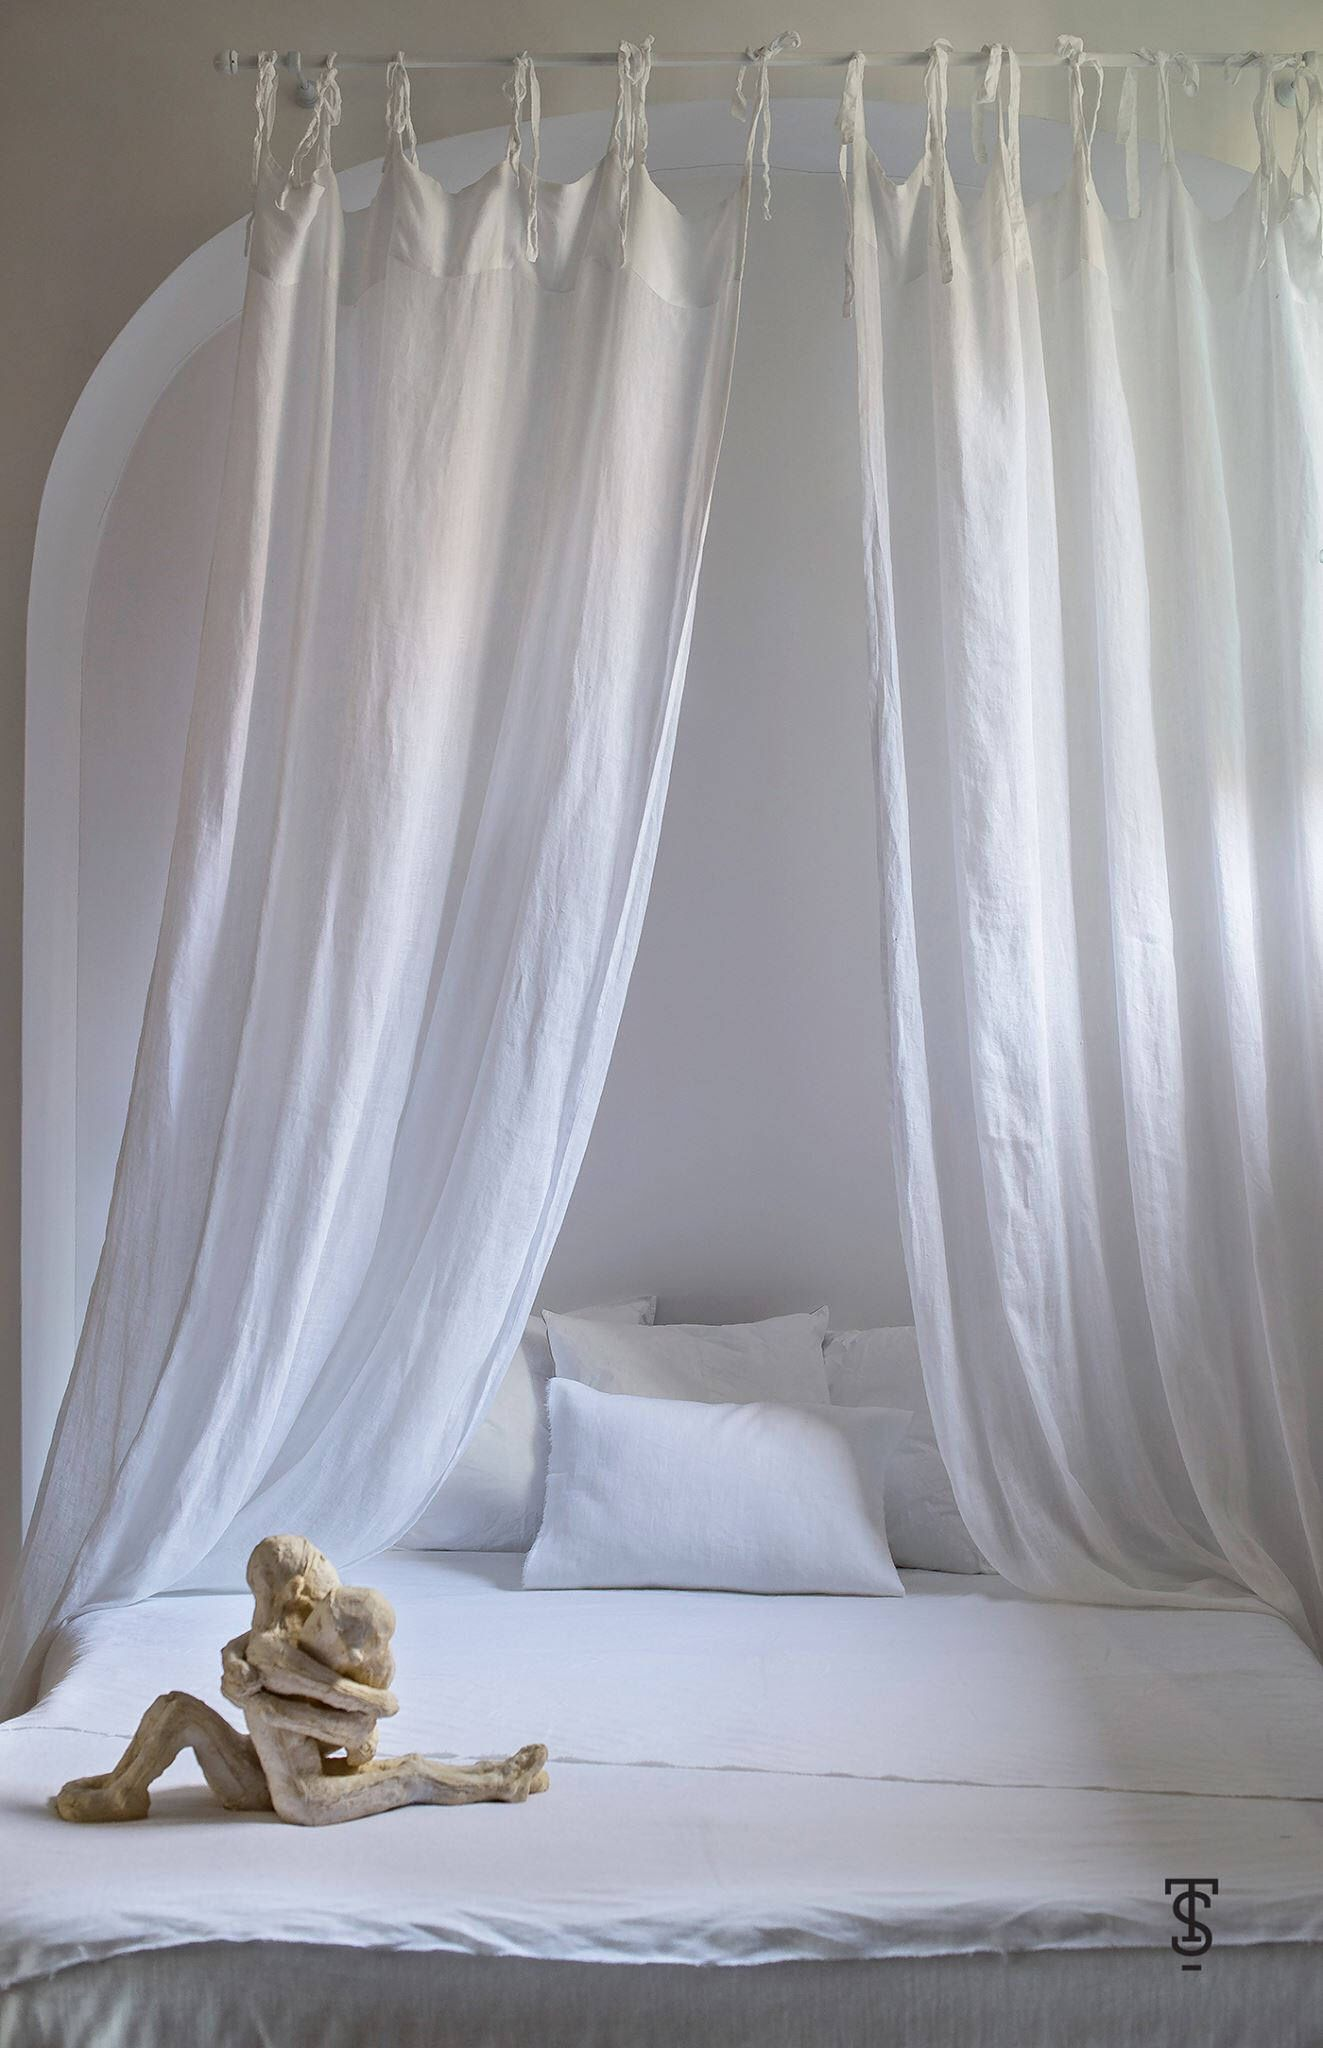 White Bed Canopy Linen Bed Canopy Canopy Bed Curtains Bed Canopies Sheer Bed Canopy Girls Bed Canopy Linen Curtains Sheer Linen Panel White Bed Canopy White Bedding White Paneling